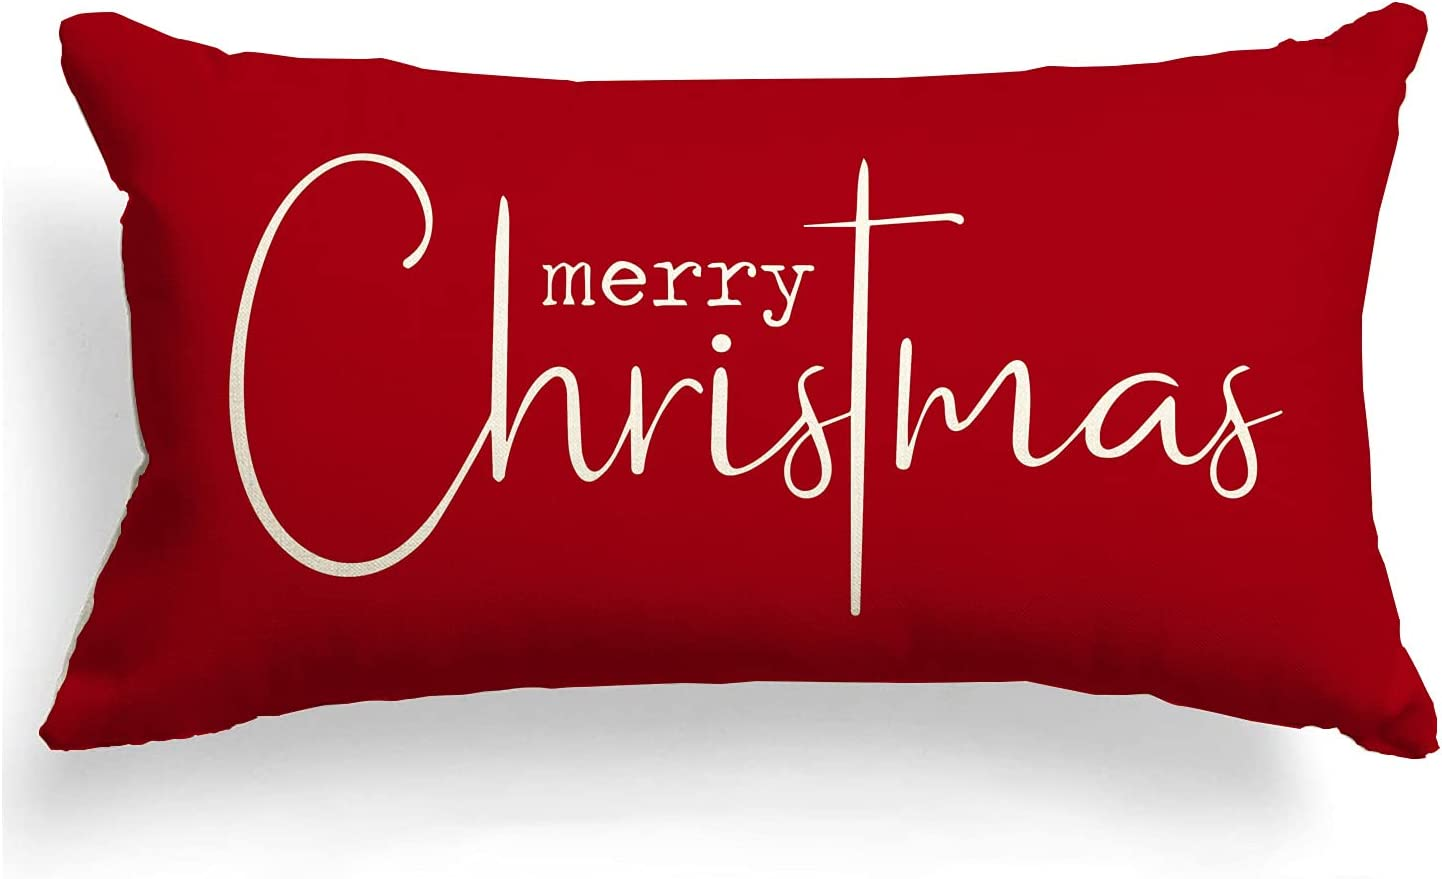 Max 40% OFF Christmas Pillow Covers Merry Decorative Super popular specialty store Throw